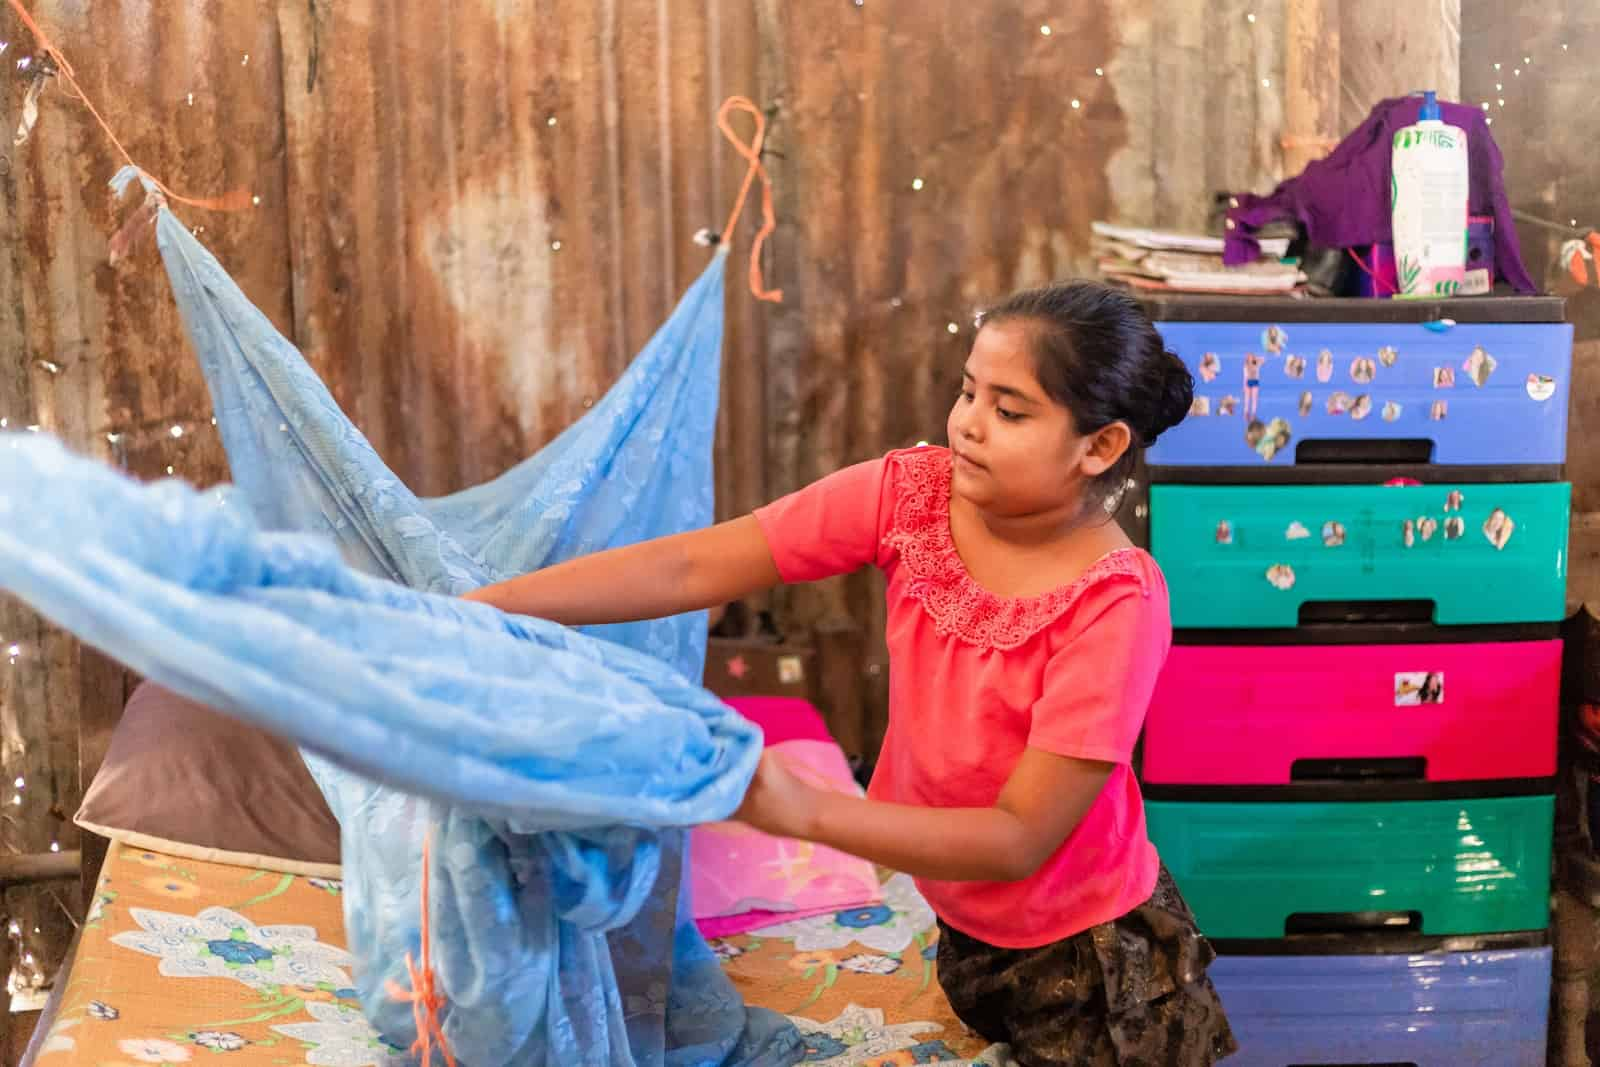 A girl in a pink shirt adjusts a mosquito net above a bed. There is a brightly colored plastic dresser in the background, in front of worn corrugated metal walls.